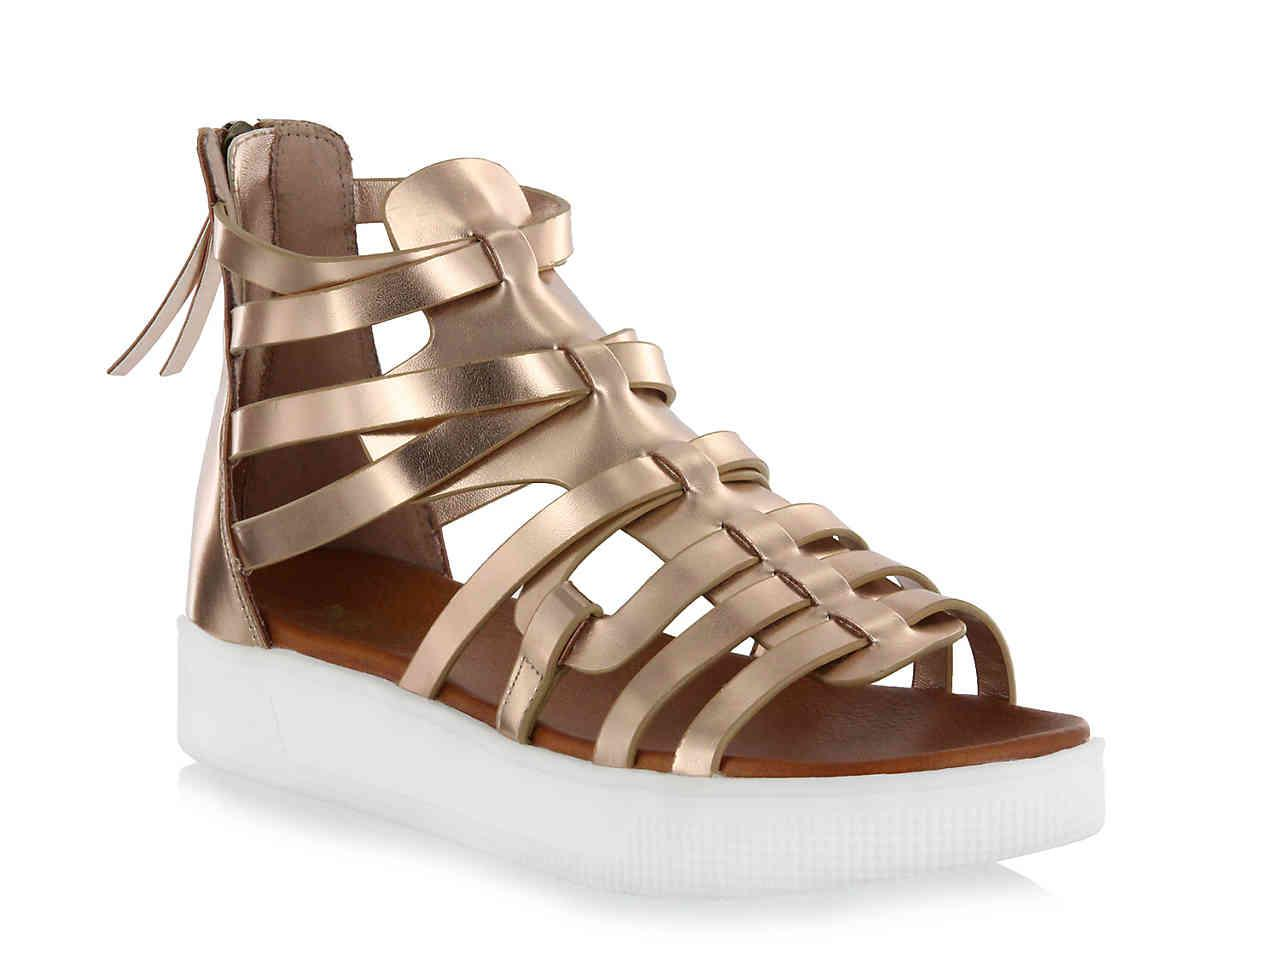 842c76157a Women's Shoes MIA Elsie Natural Gladiator Strappy Platform Sandal Clothing,  Shoes & Accessories